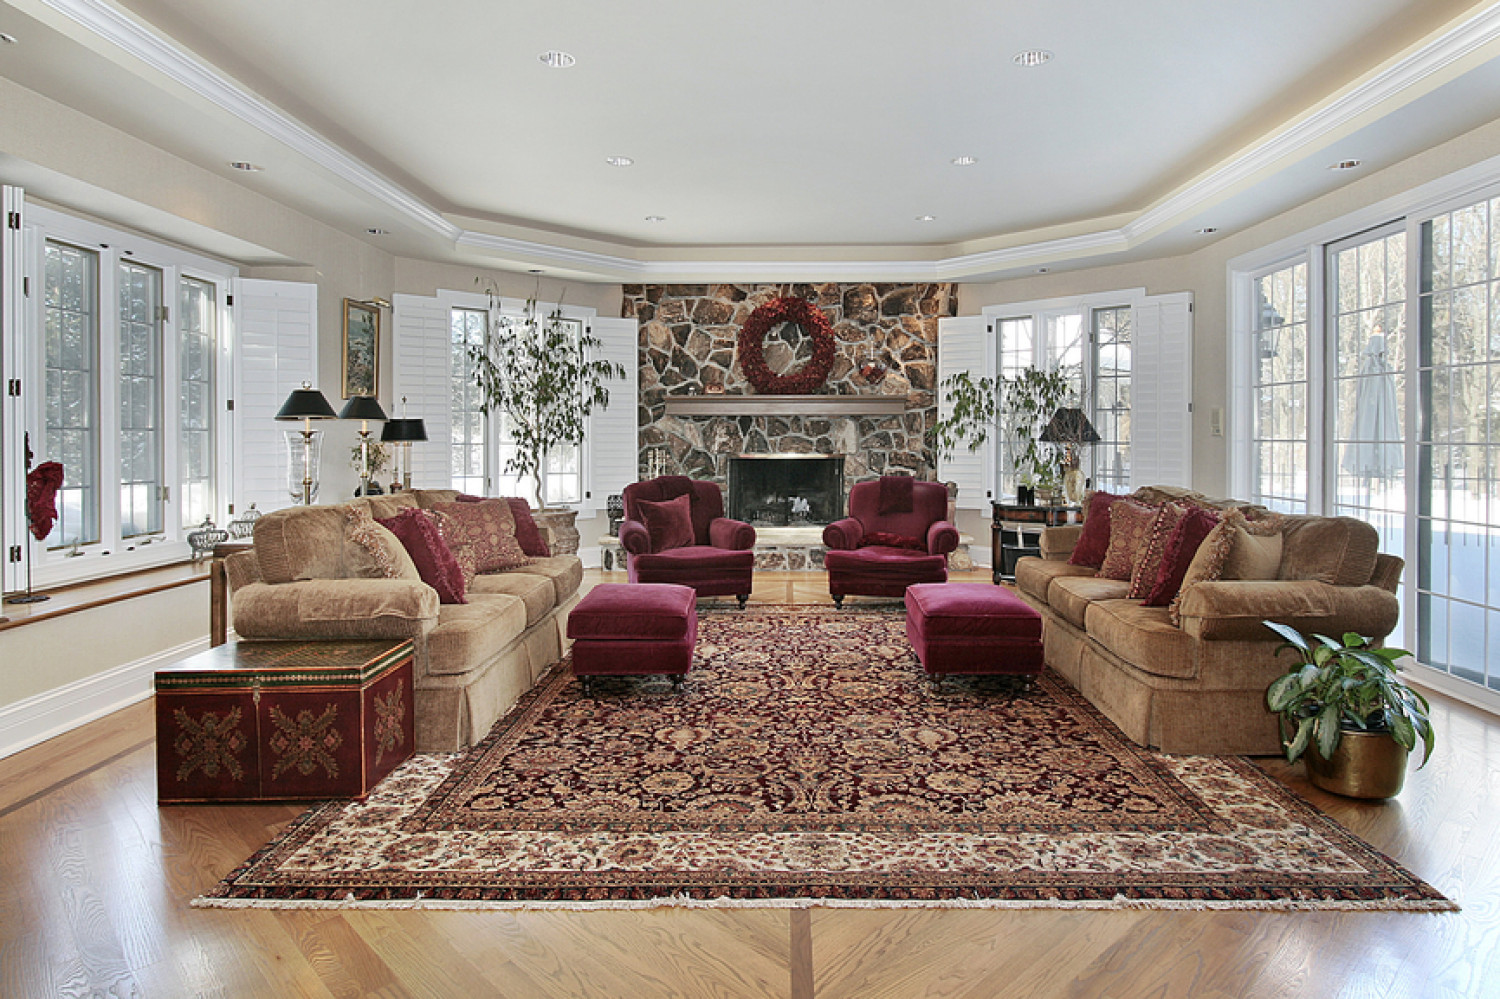 Using Large Area Rugs Around the House Infographic